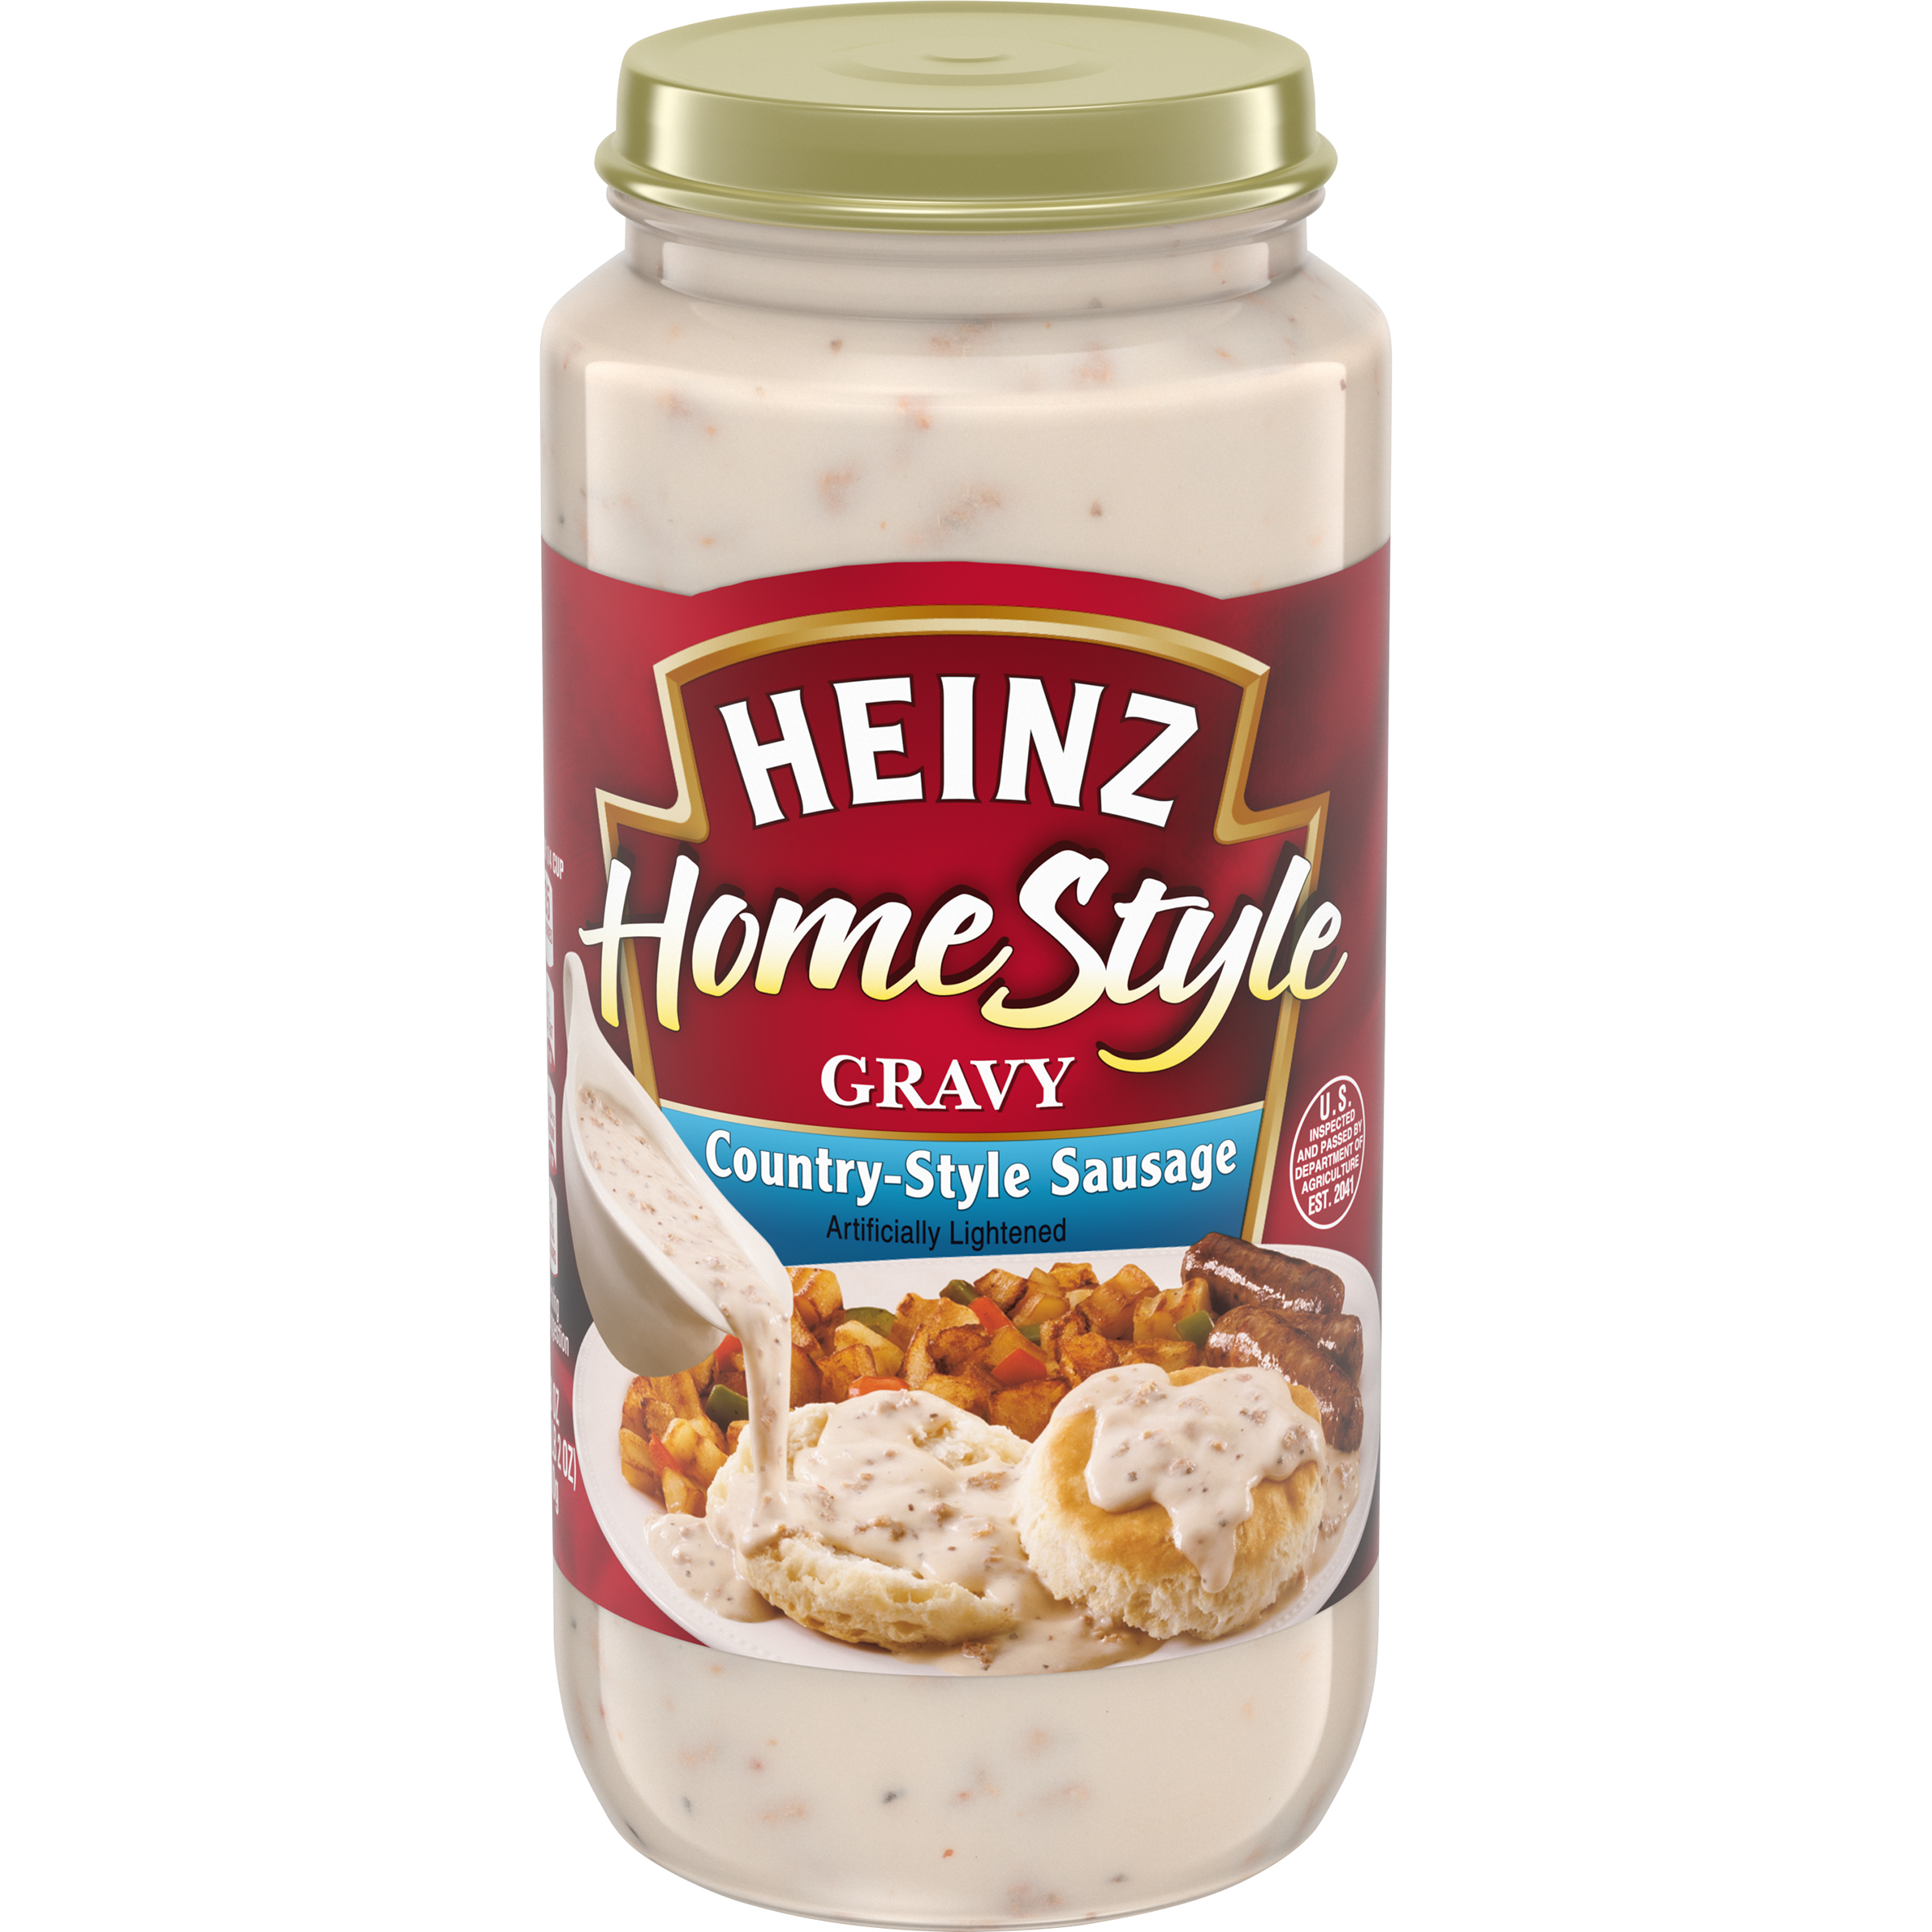 Heinz Home Style Country-Style Sausage Gravy 18 oz Jar image